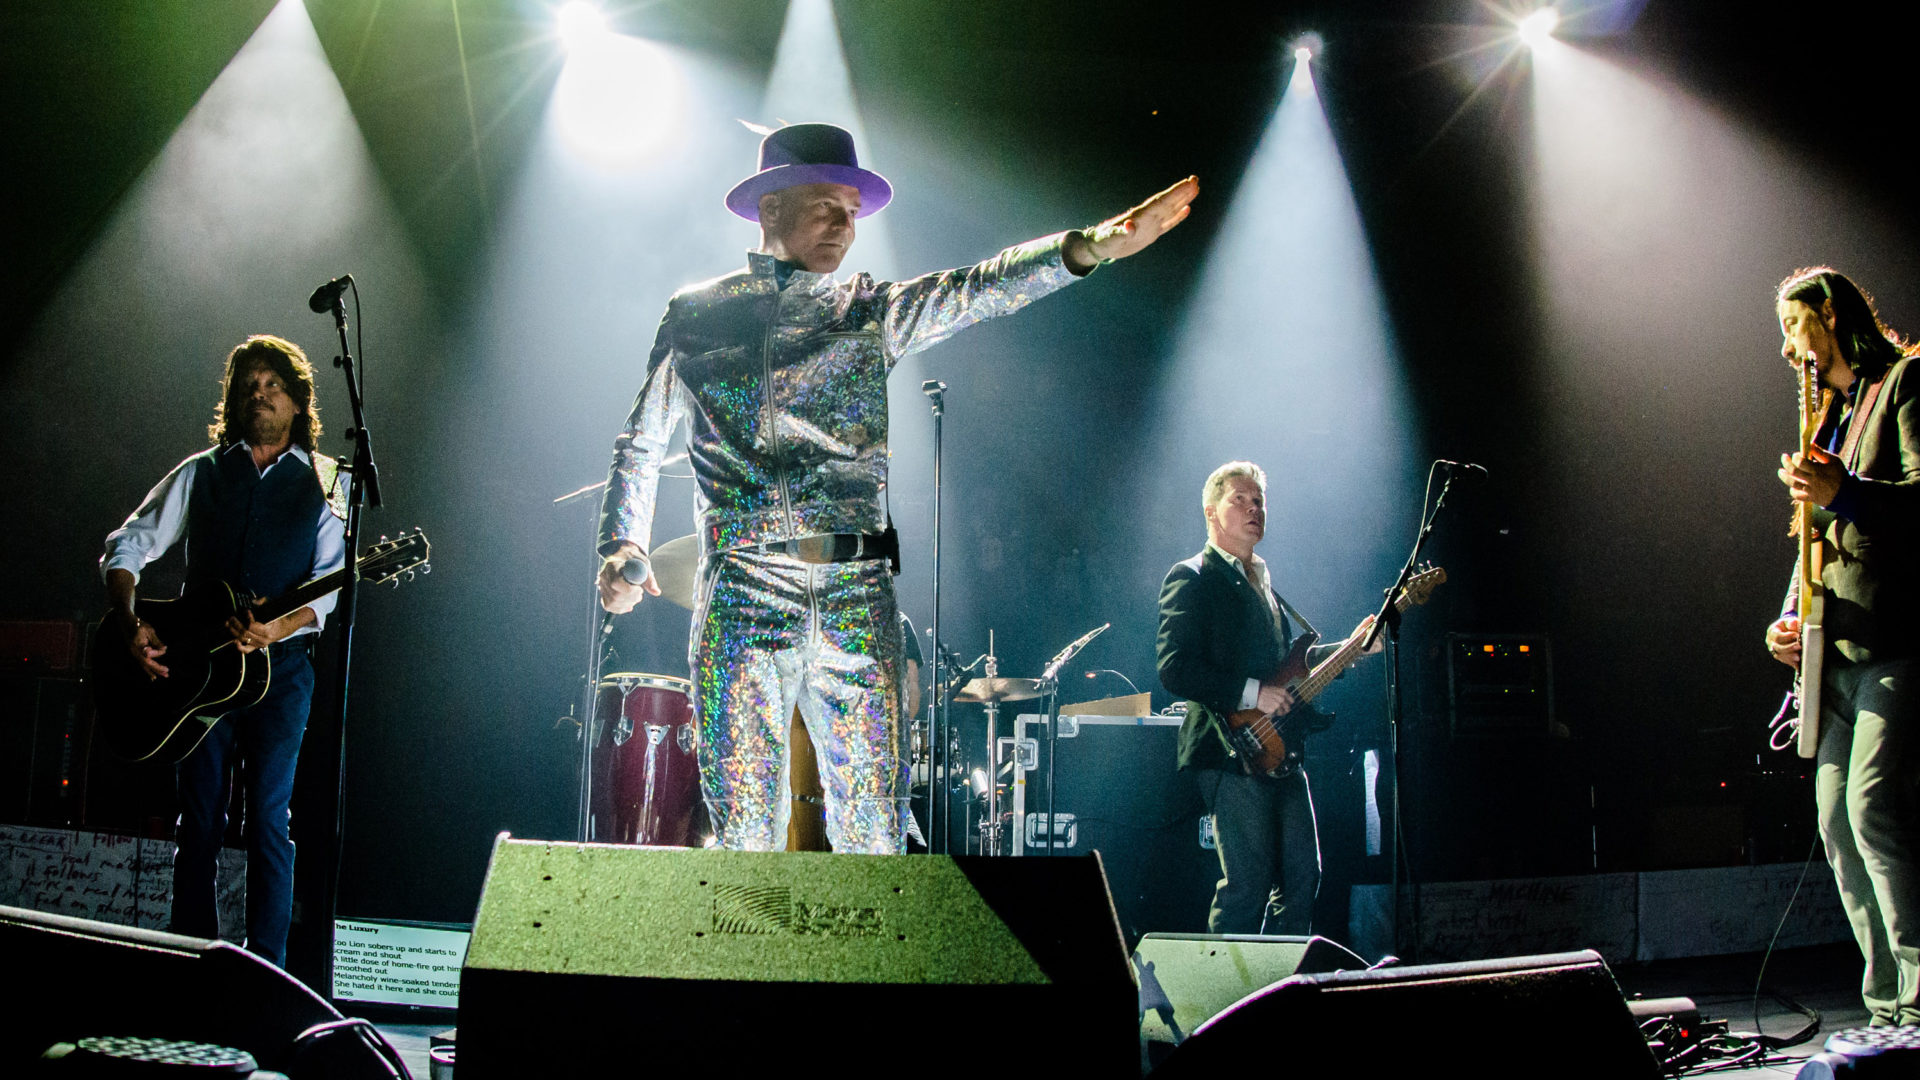 The Tragically Hip Fully Completely Tour Setlist